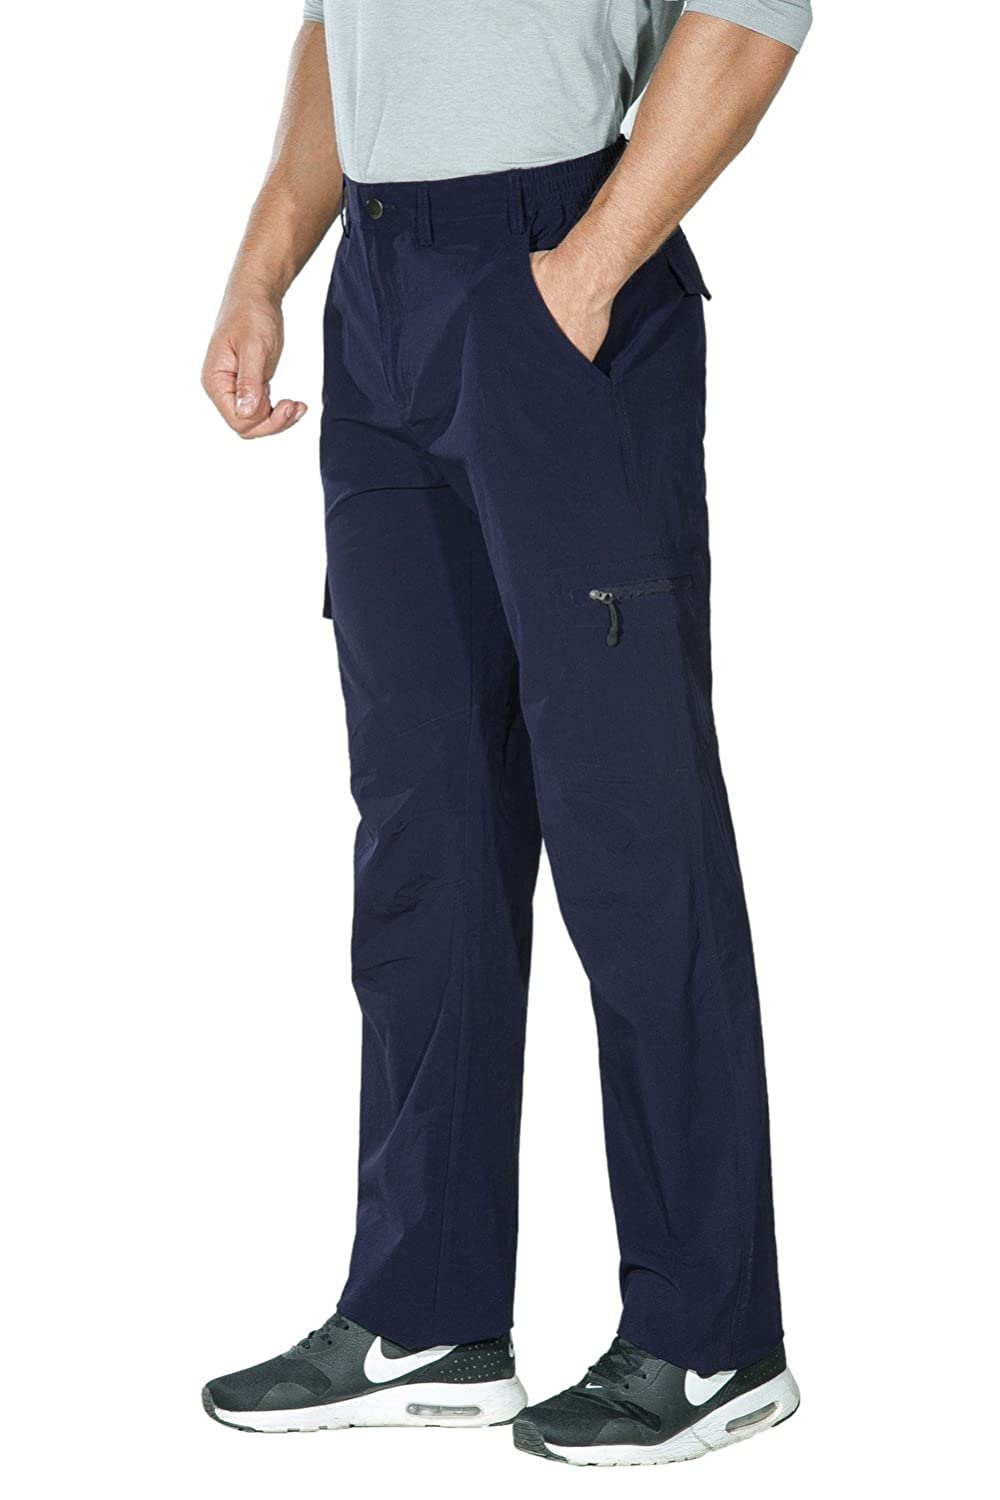 Nonwe Mens Outdoor Quick Dry Water-Resistant Breathable Cargo Pants OT6117011